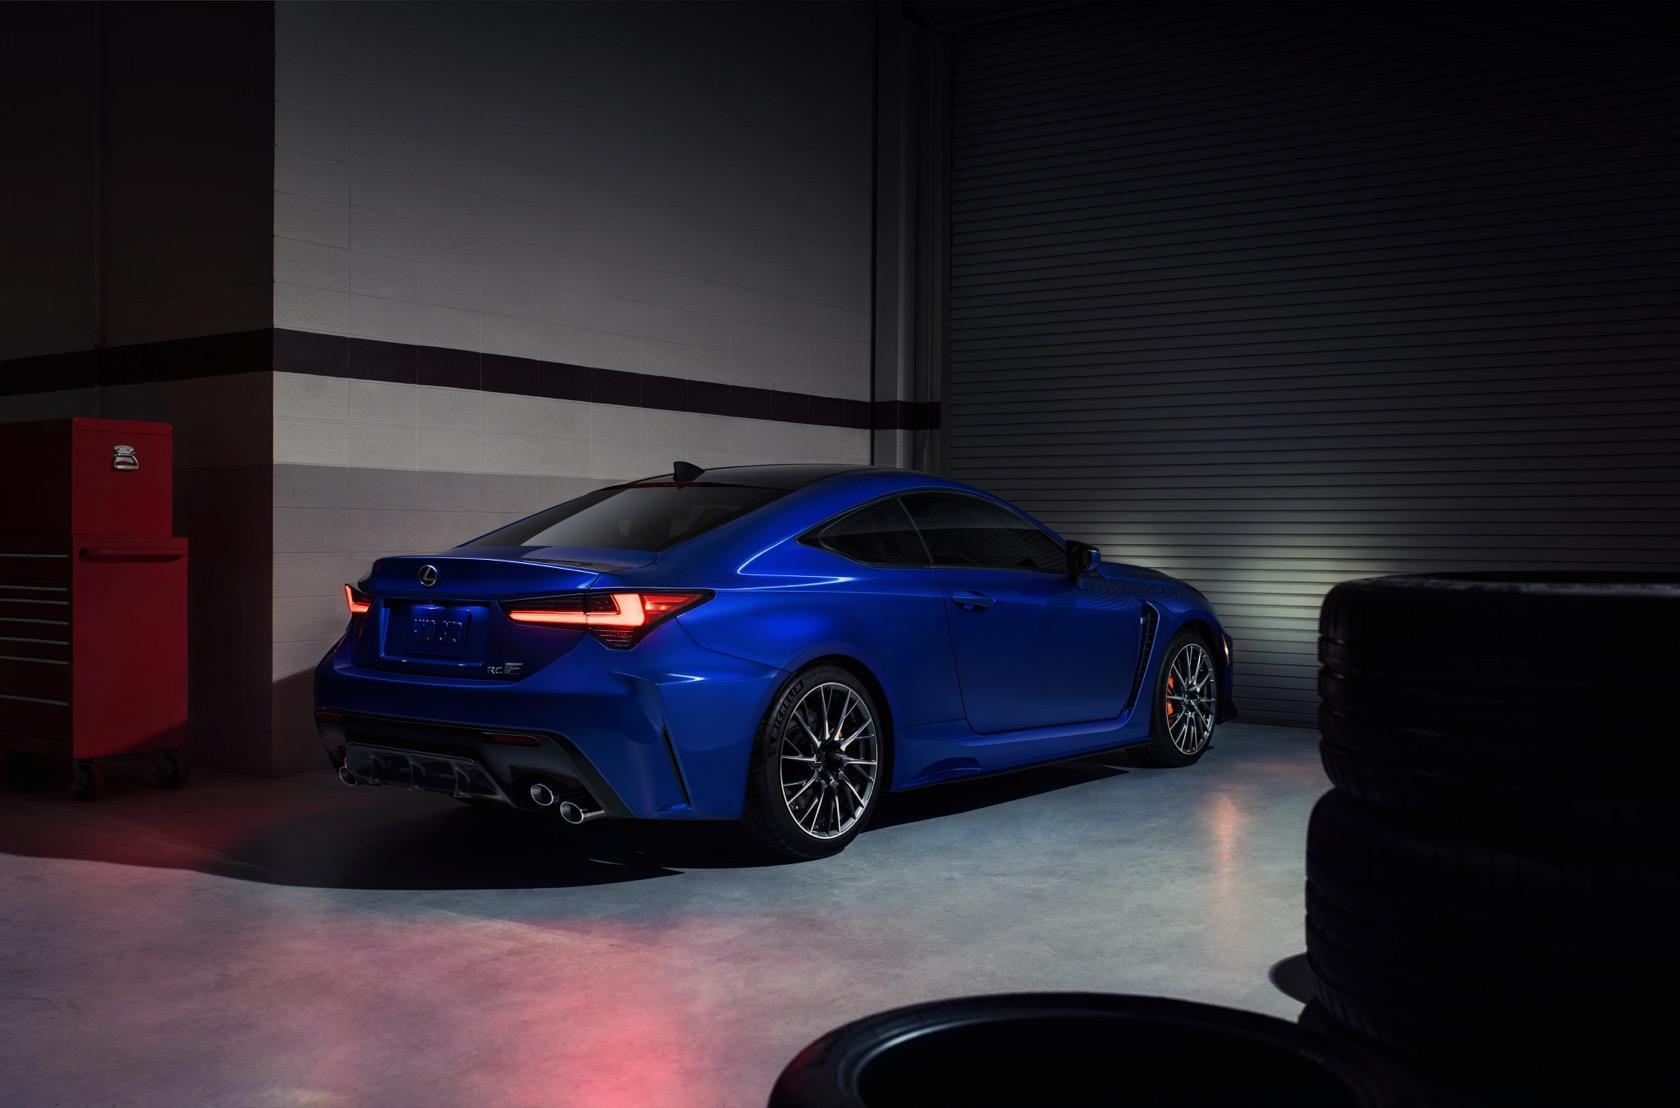 2020 Lexus Rc F Track Edition Gives Luxury Coupe Real Bite Slashgear